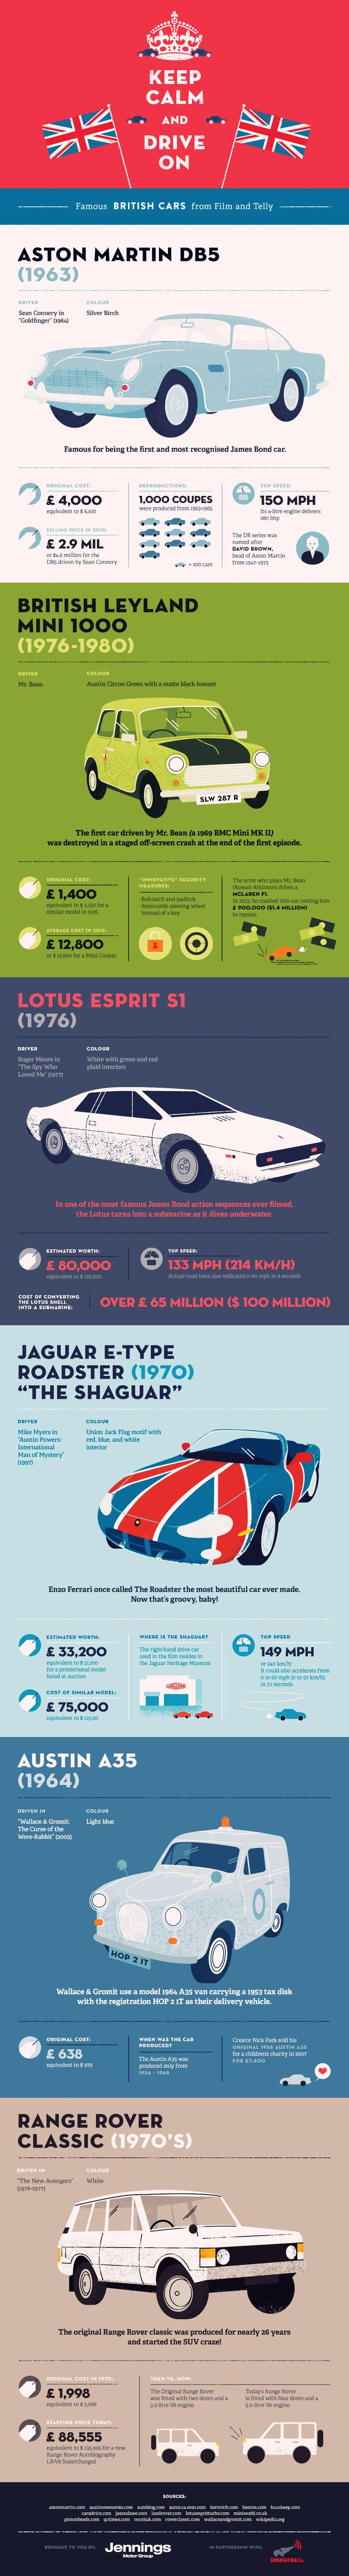 Unique Infographic Design, Famous British Cards From Film And Telly @parkchungi #Infographic #Design (http://www.pinterest.com/aldenchong/)